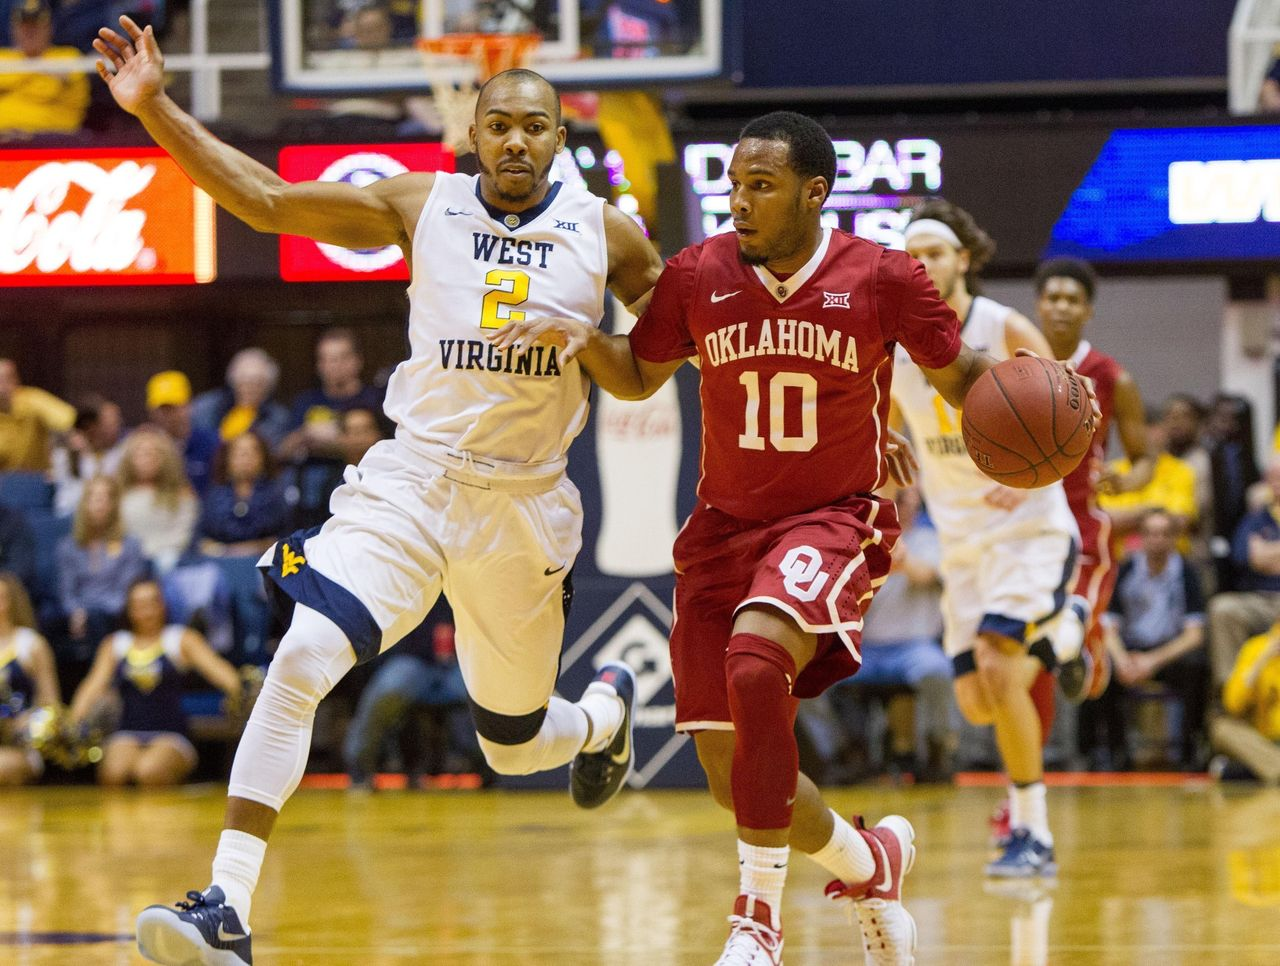 Cropped_2017-01-19t002649z_669046644_nocid_rtrmadp_3_ncaa-basketball-oklahoma-at-west-virginia